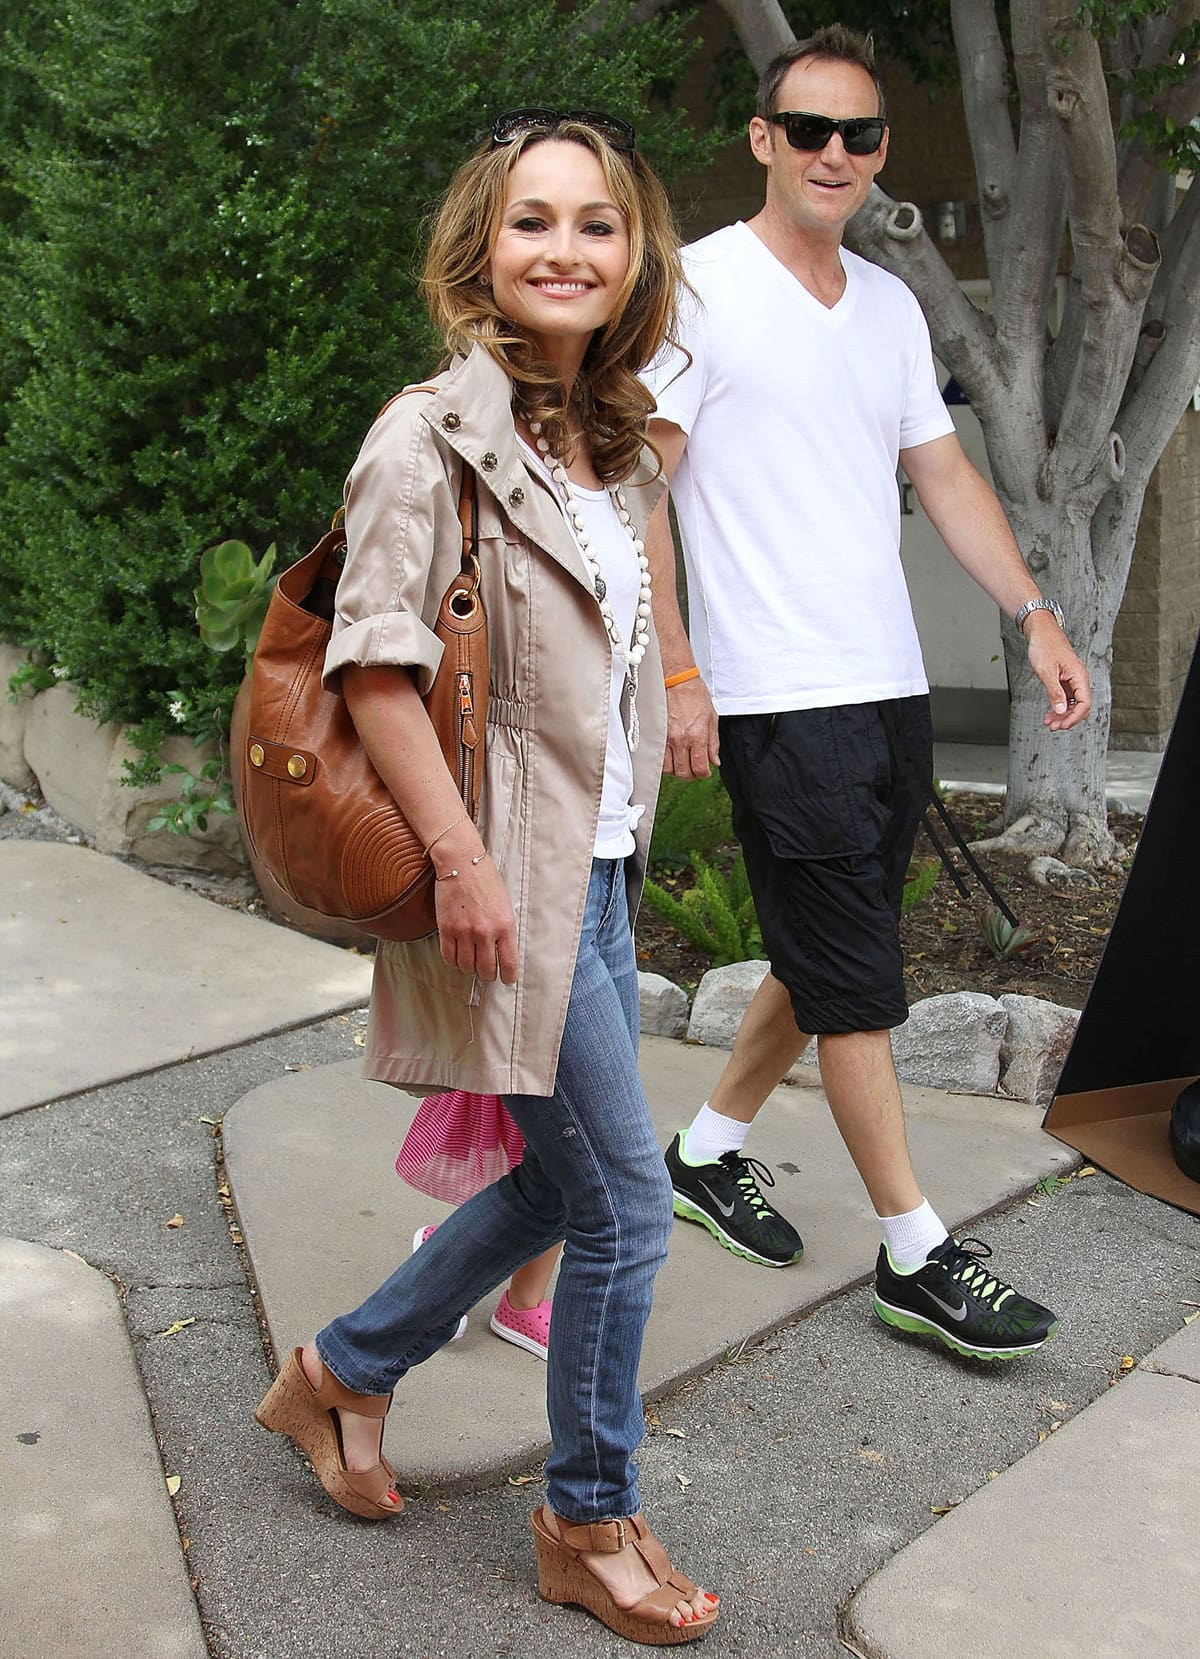 Giada De Laurentiis and Todd Thompson married in 2003 and filed for divorce in December 2014